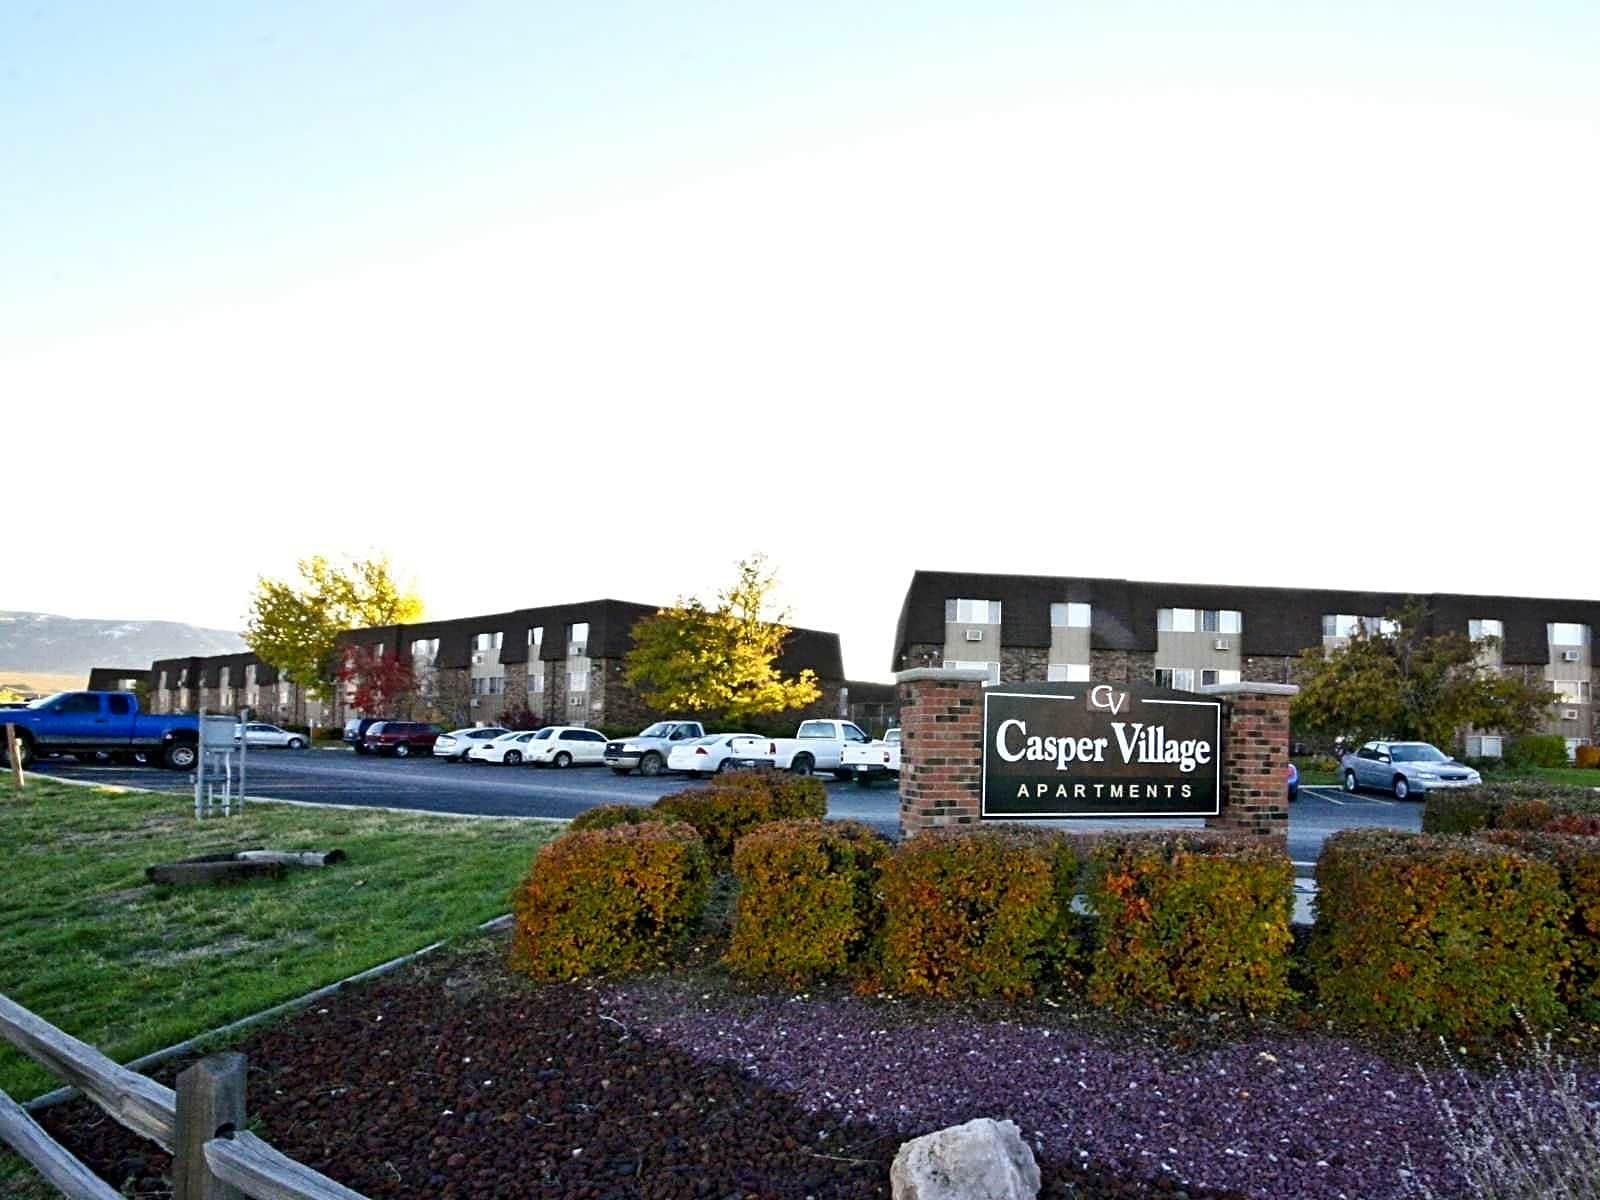 Casper Village for rent in Casper